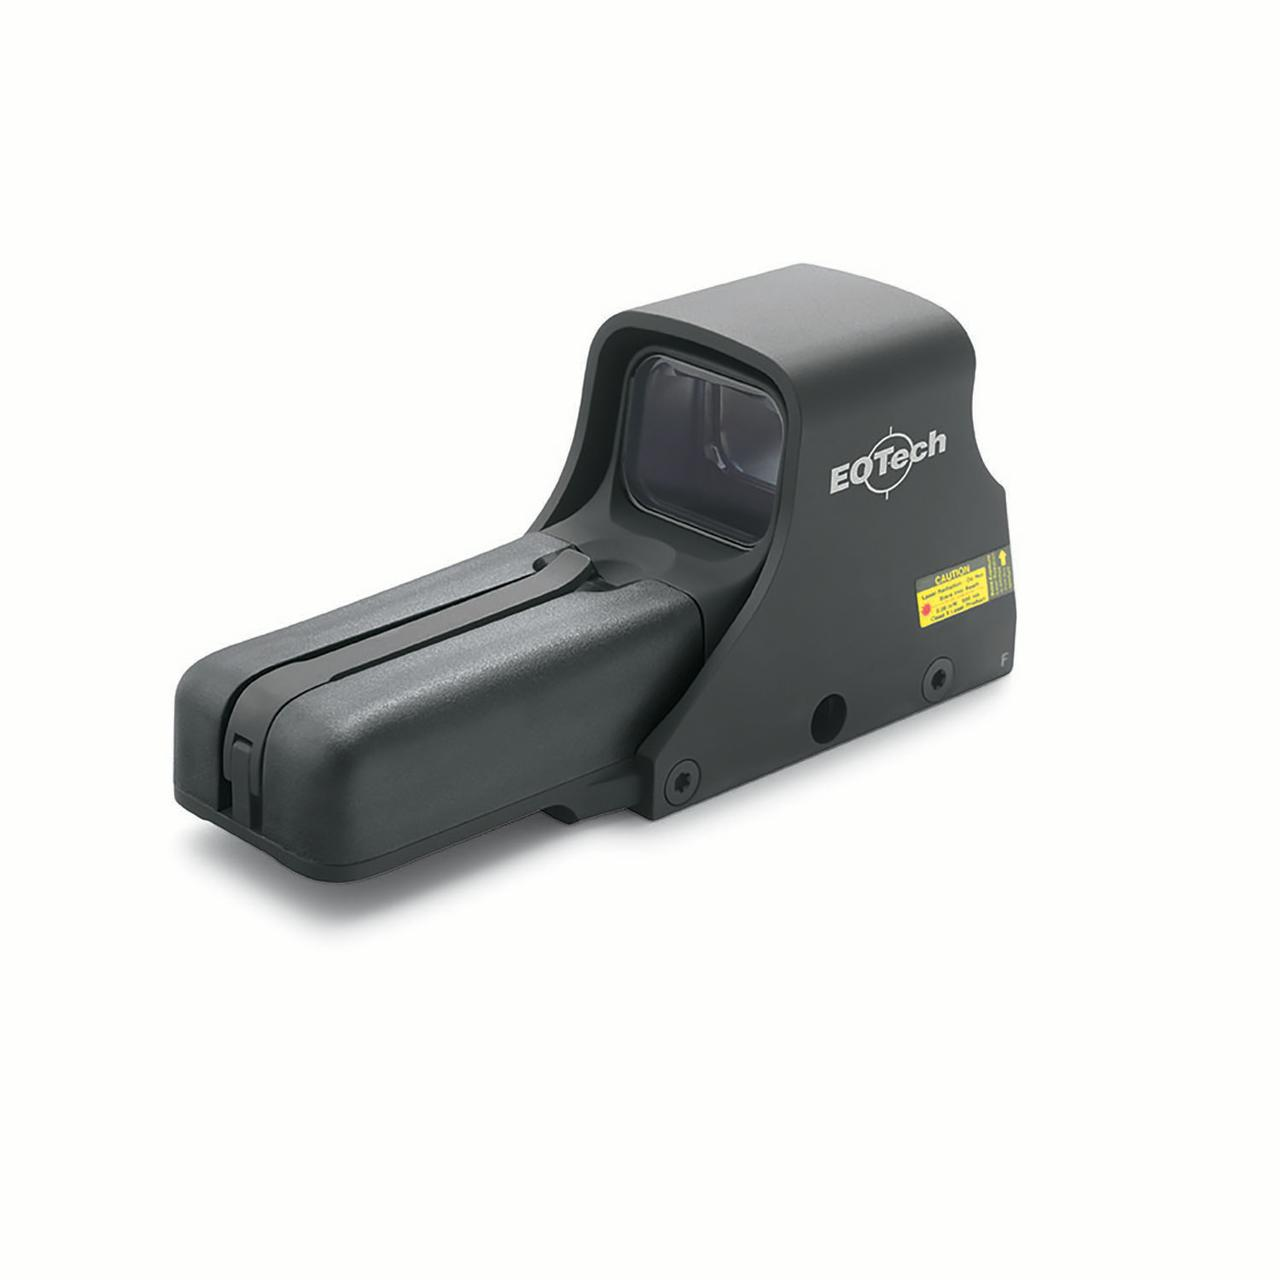 EoTech 552.XR308 Holographic Weapon Sight by Eotech